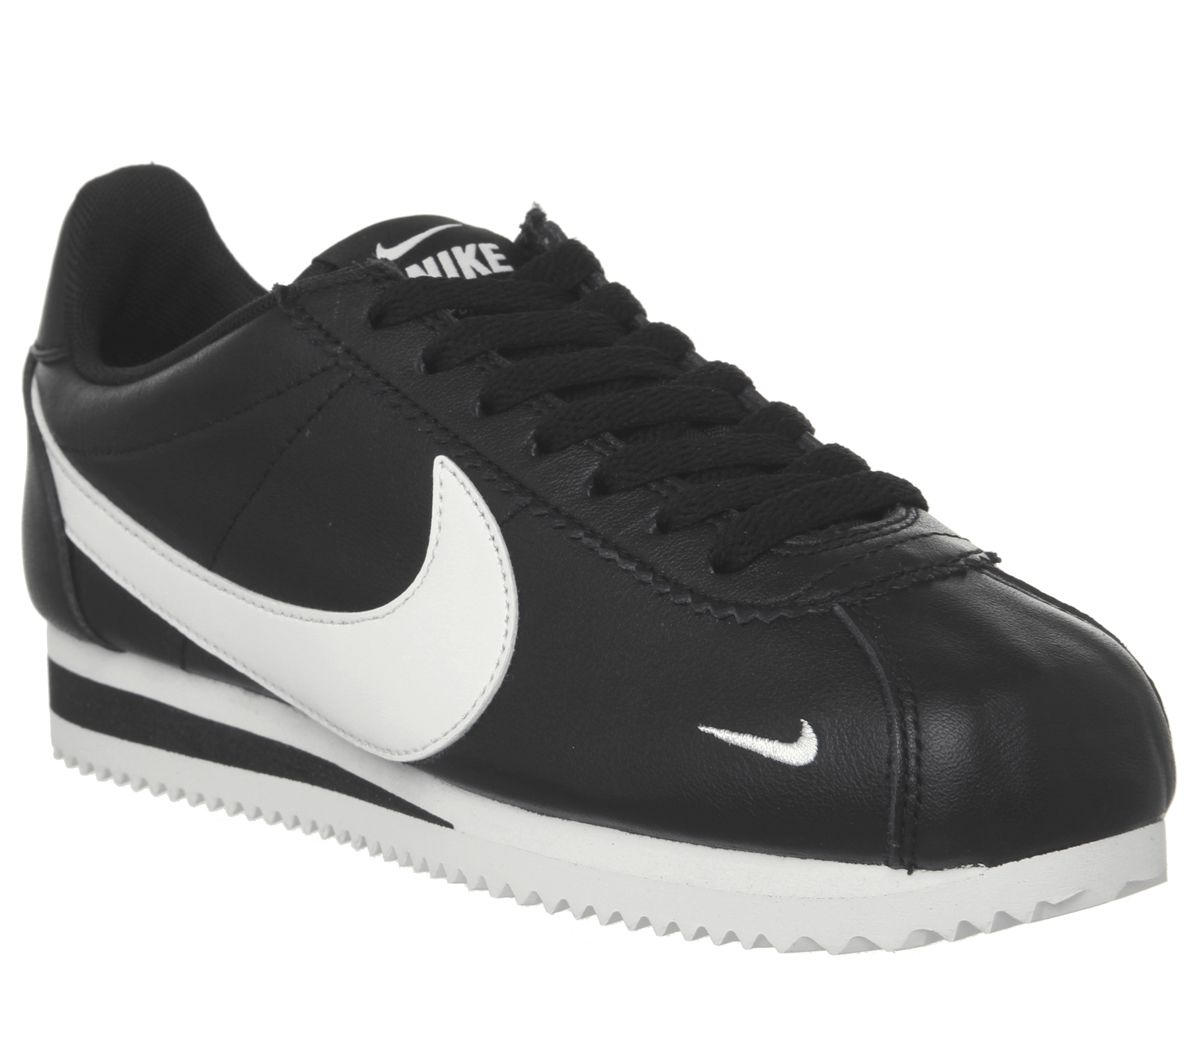 buy popular 2c3ef e2dd9 Nike Classic Cortez Og Trainers Black White - Hers trainers